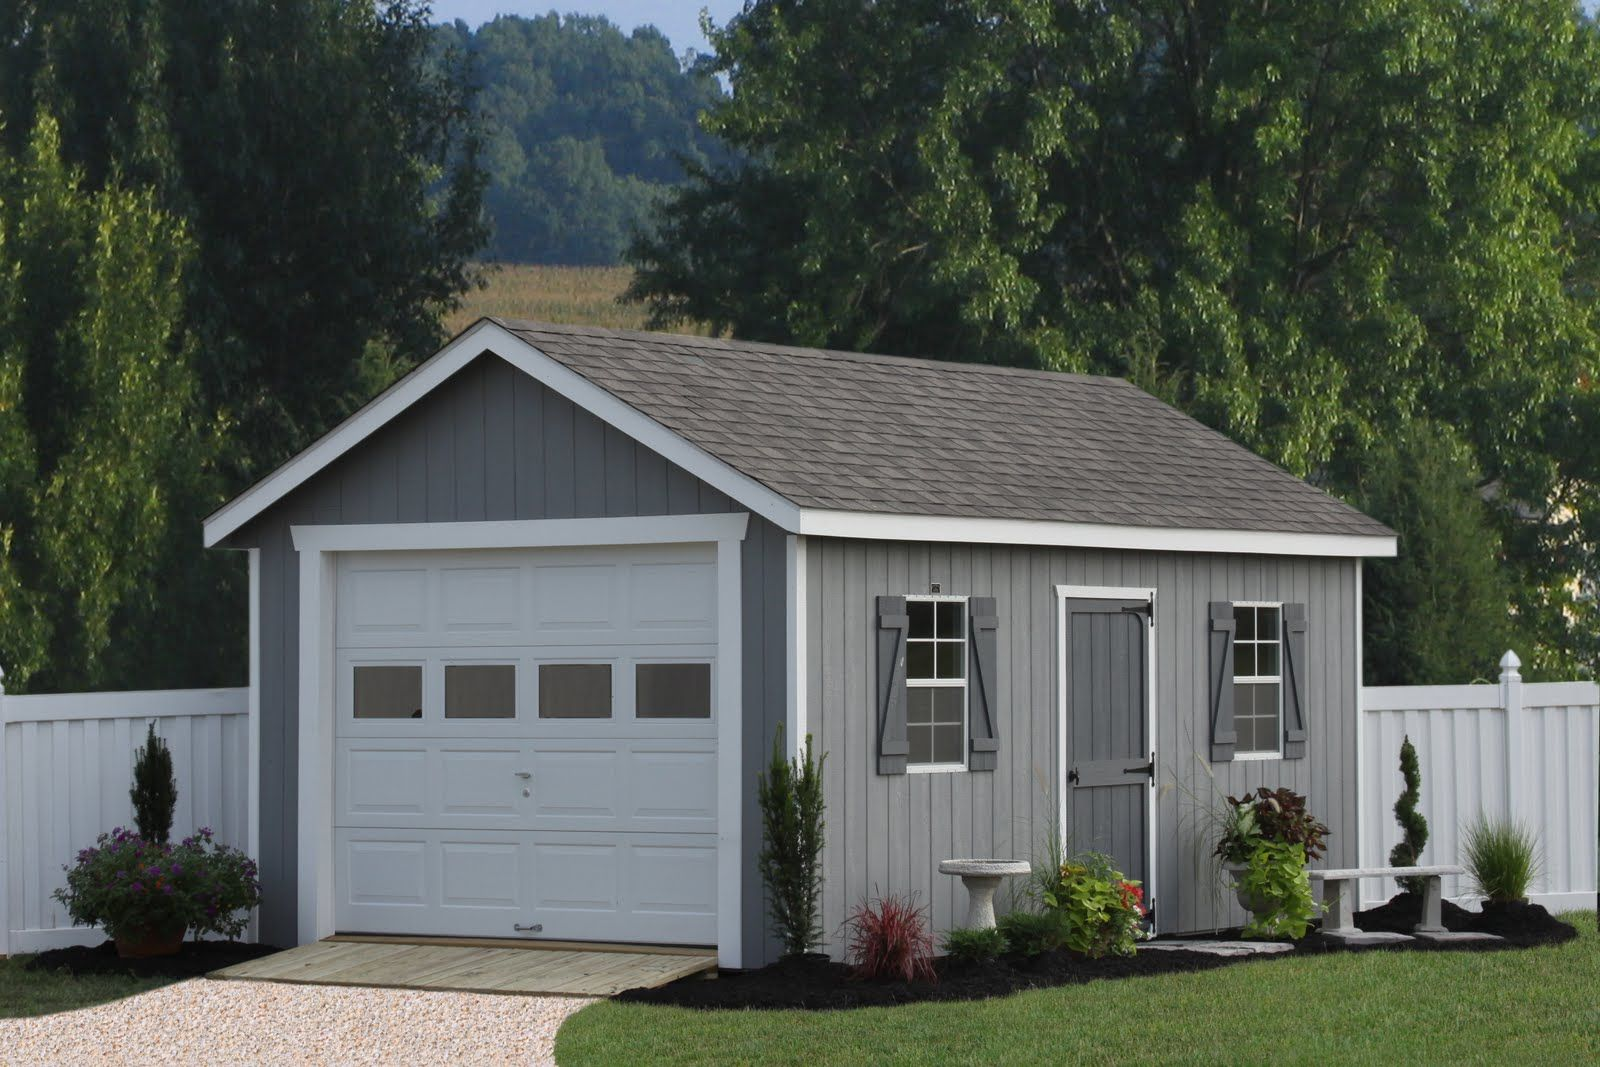 Add on garage plans 12x20 classic one car garage for Car garage